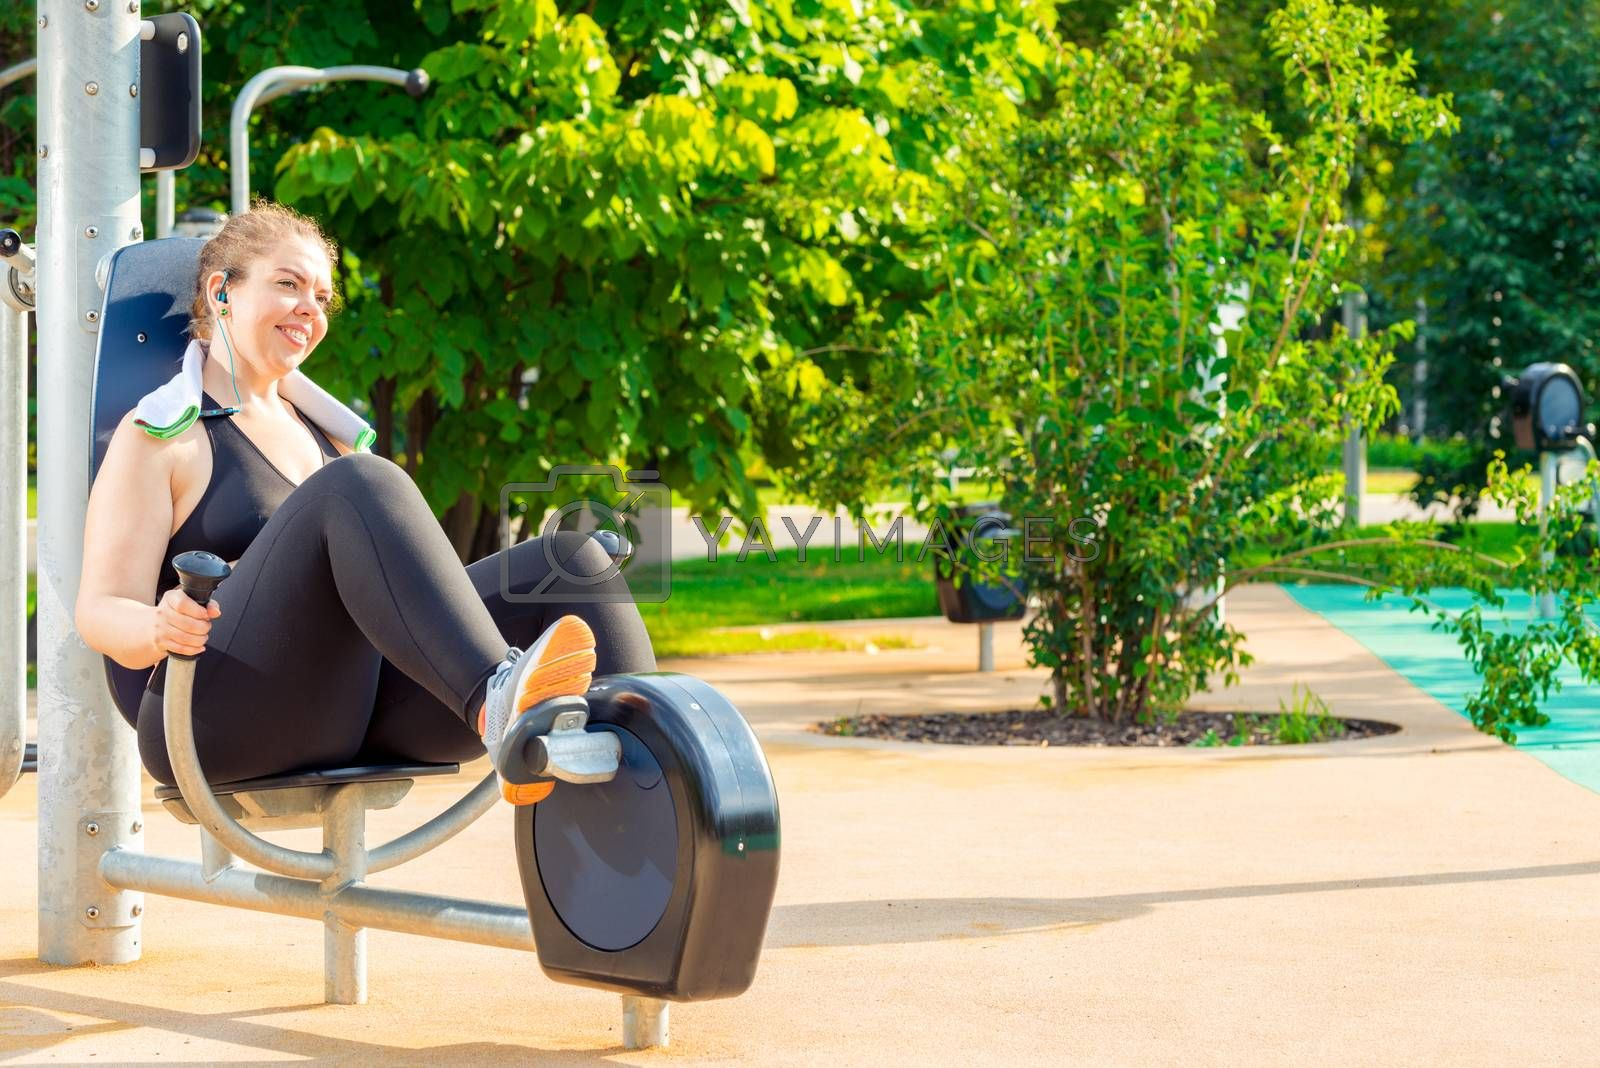 active oversized woman doing exercise on a stationary bike in a  by Labunskiy K.